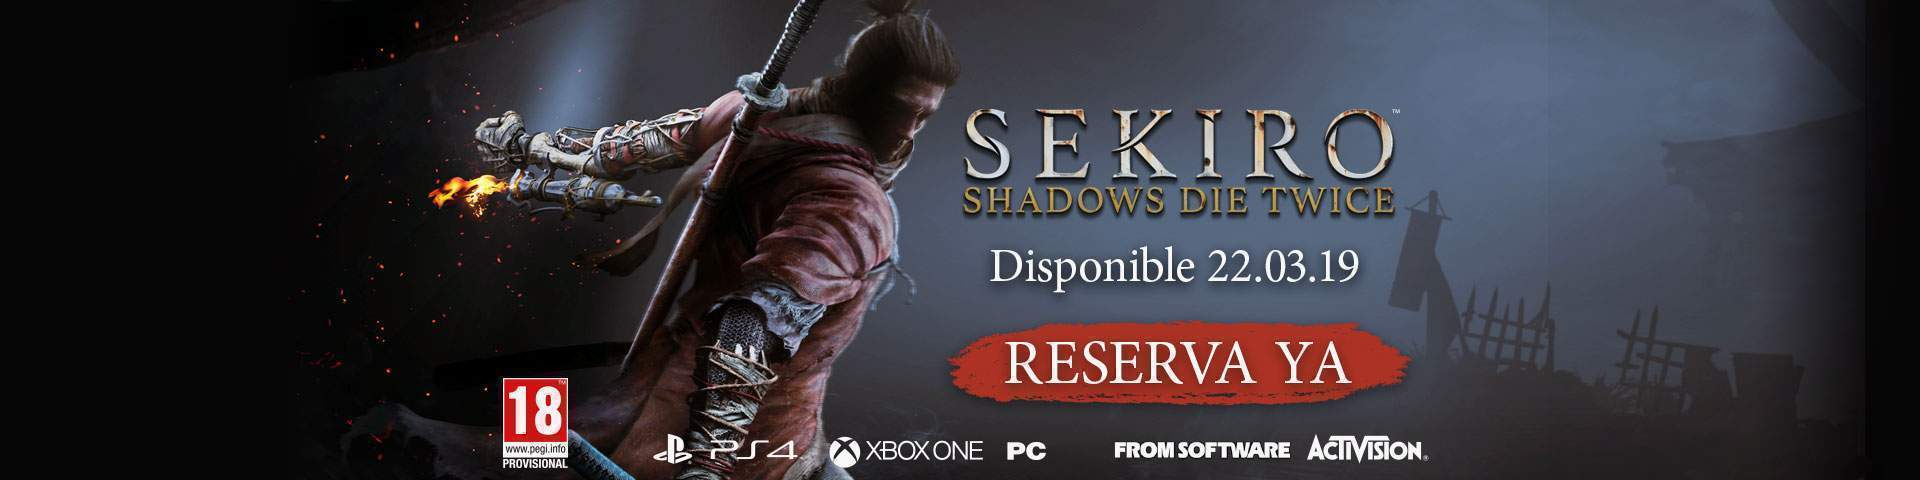 5261125Banner-MM-sekiro-1920x480-final